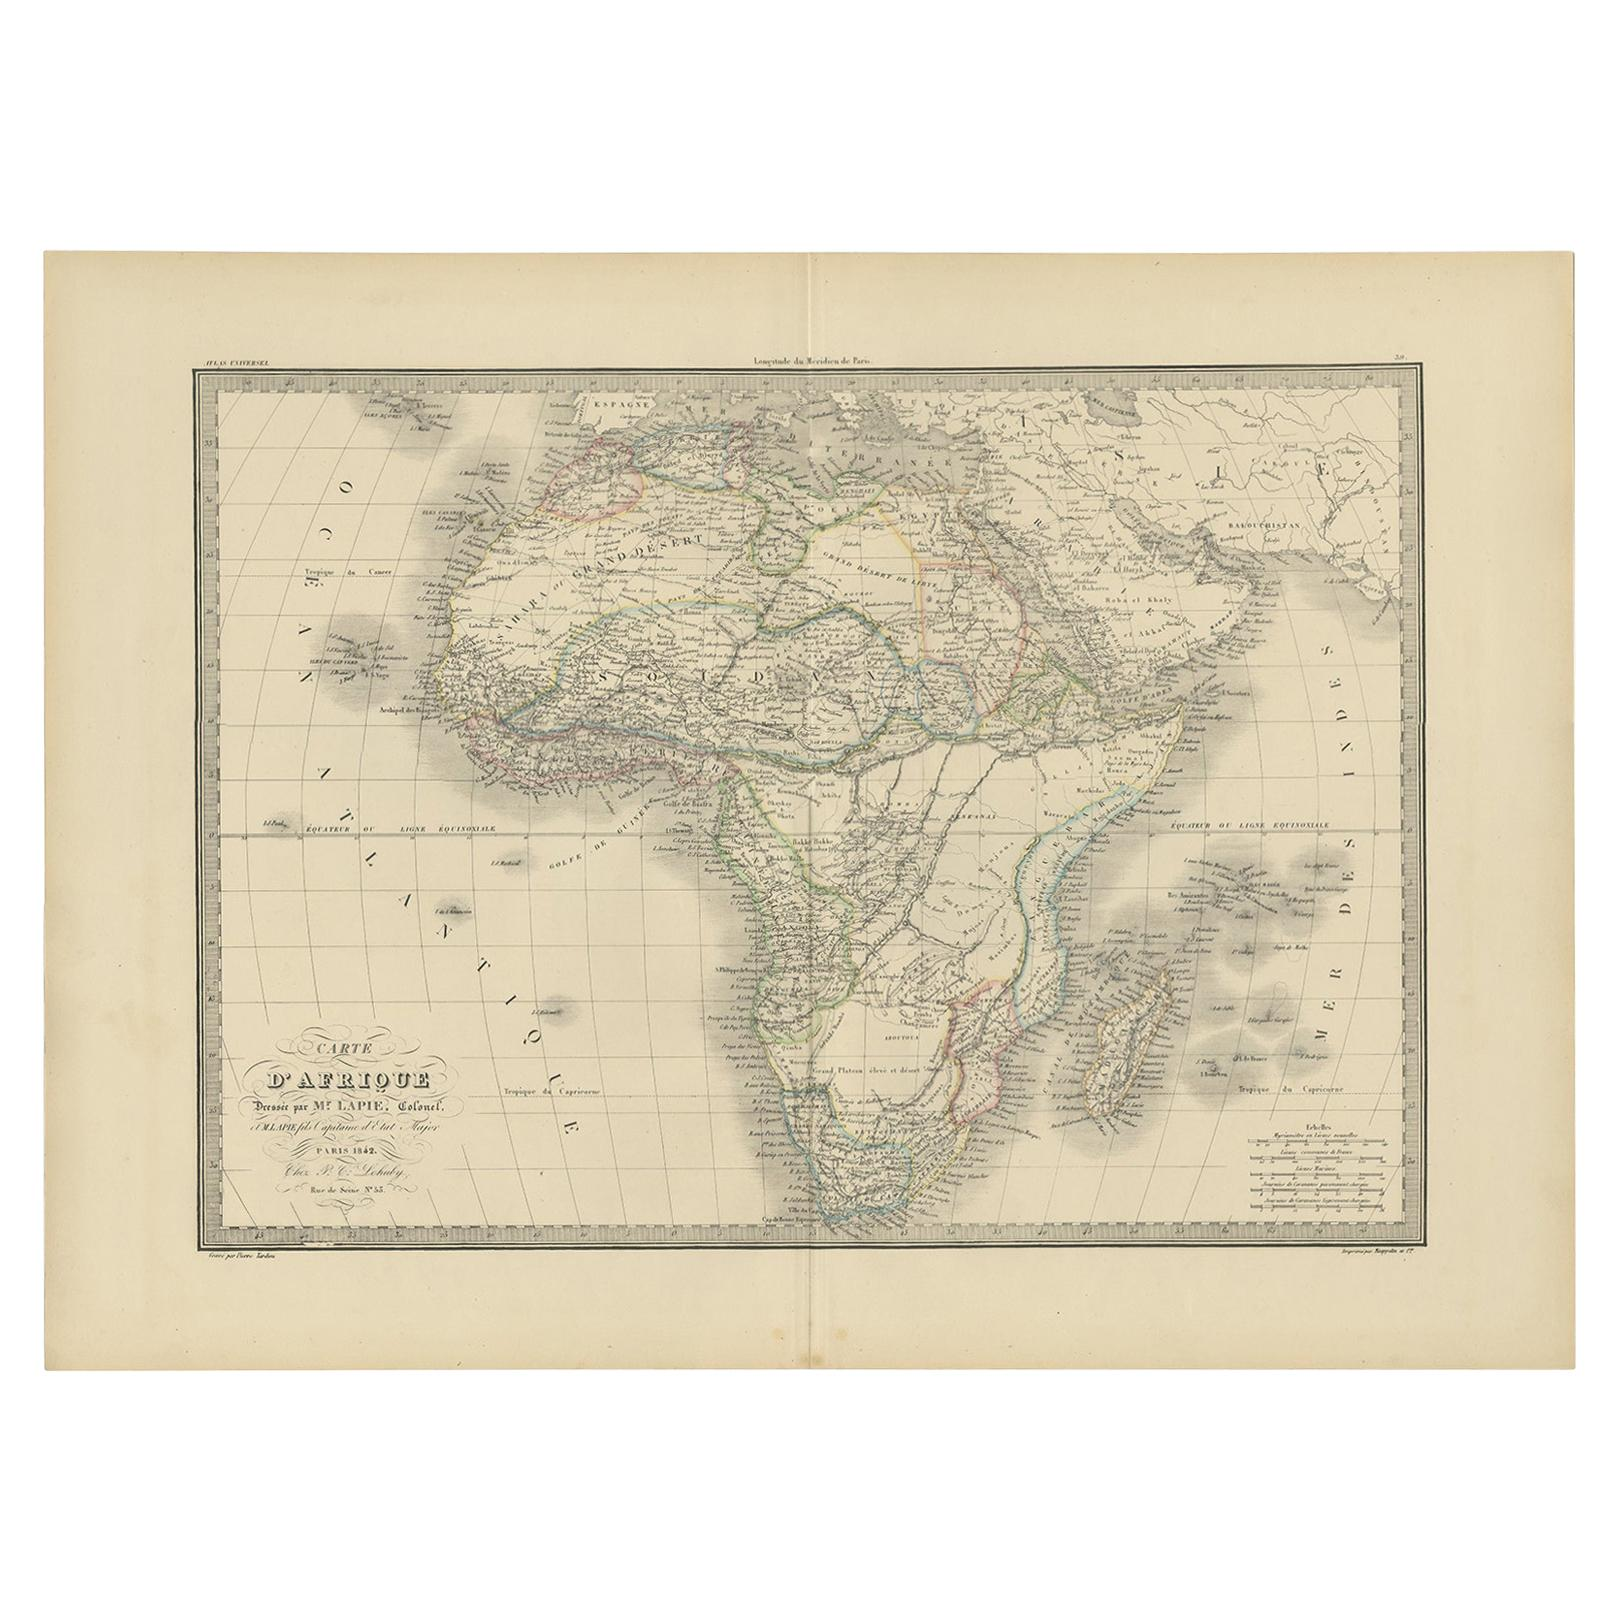 Antique Map of Africa by Lapie, 1842